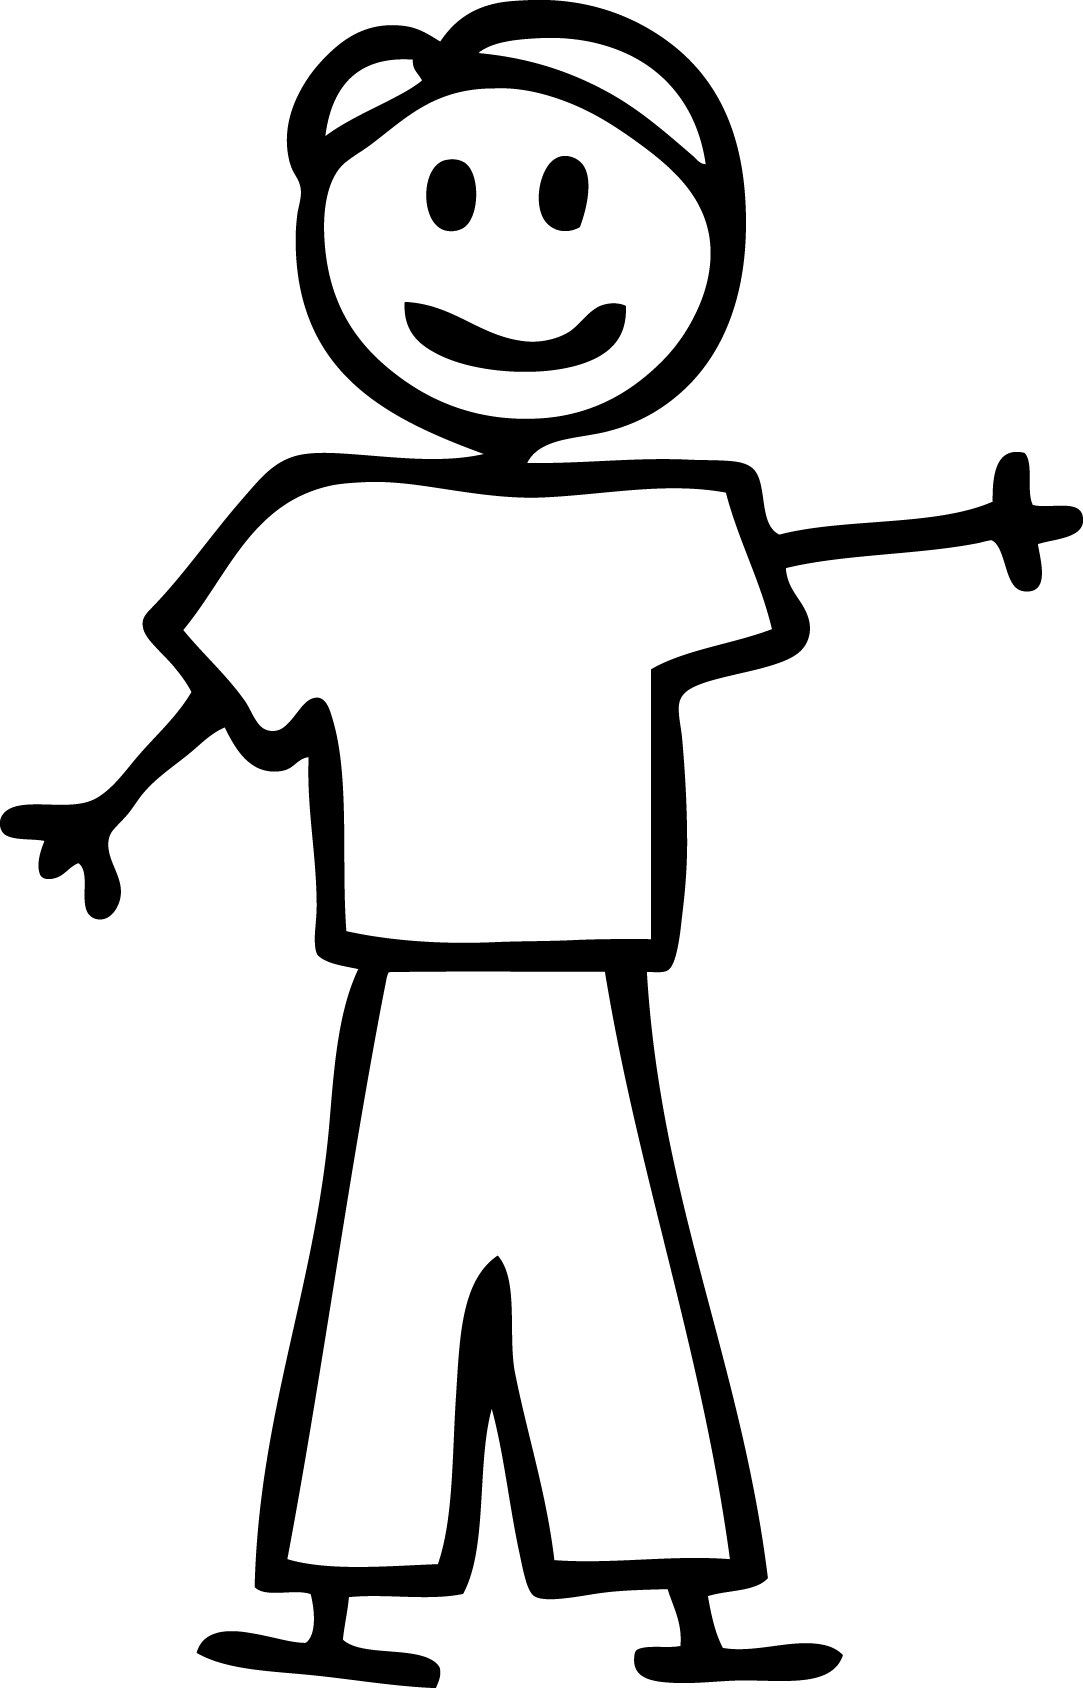 Stick People Dad Clipart Black And White 20 Free Cliparts